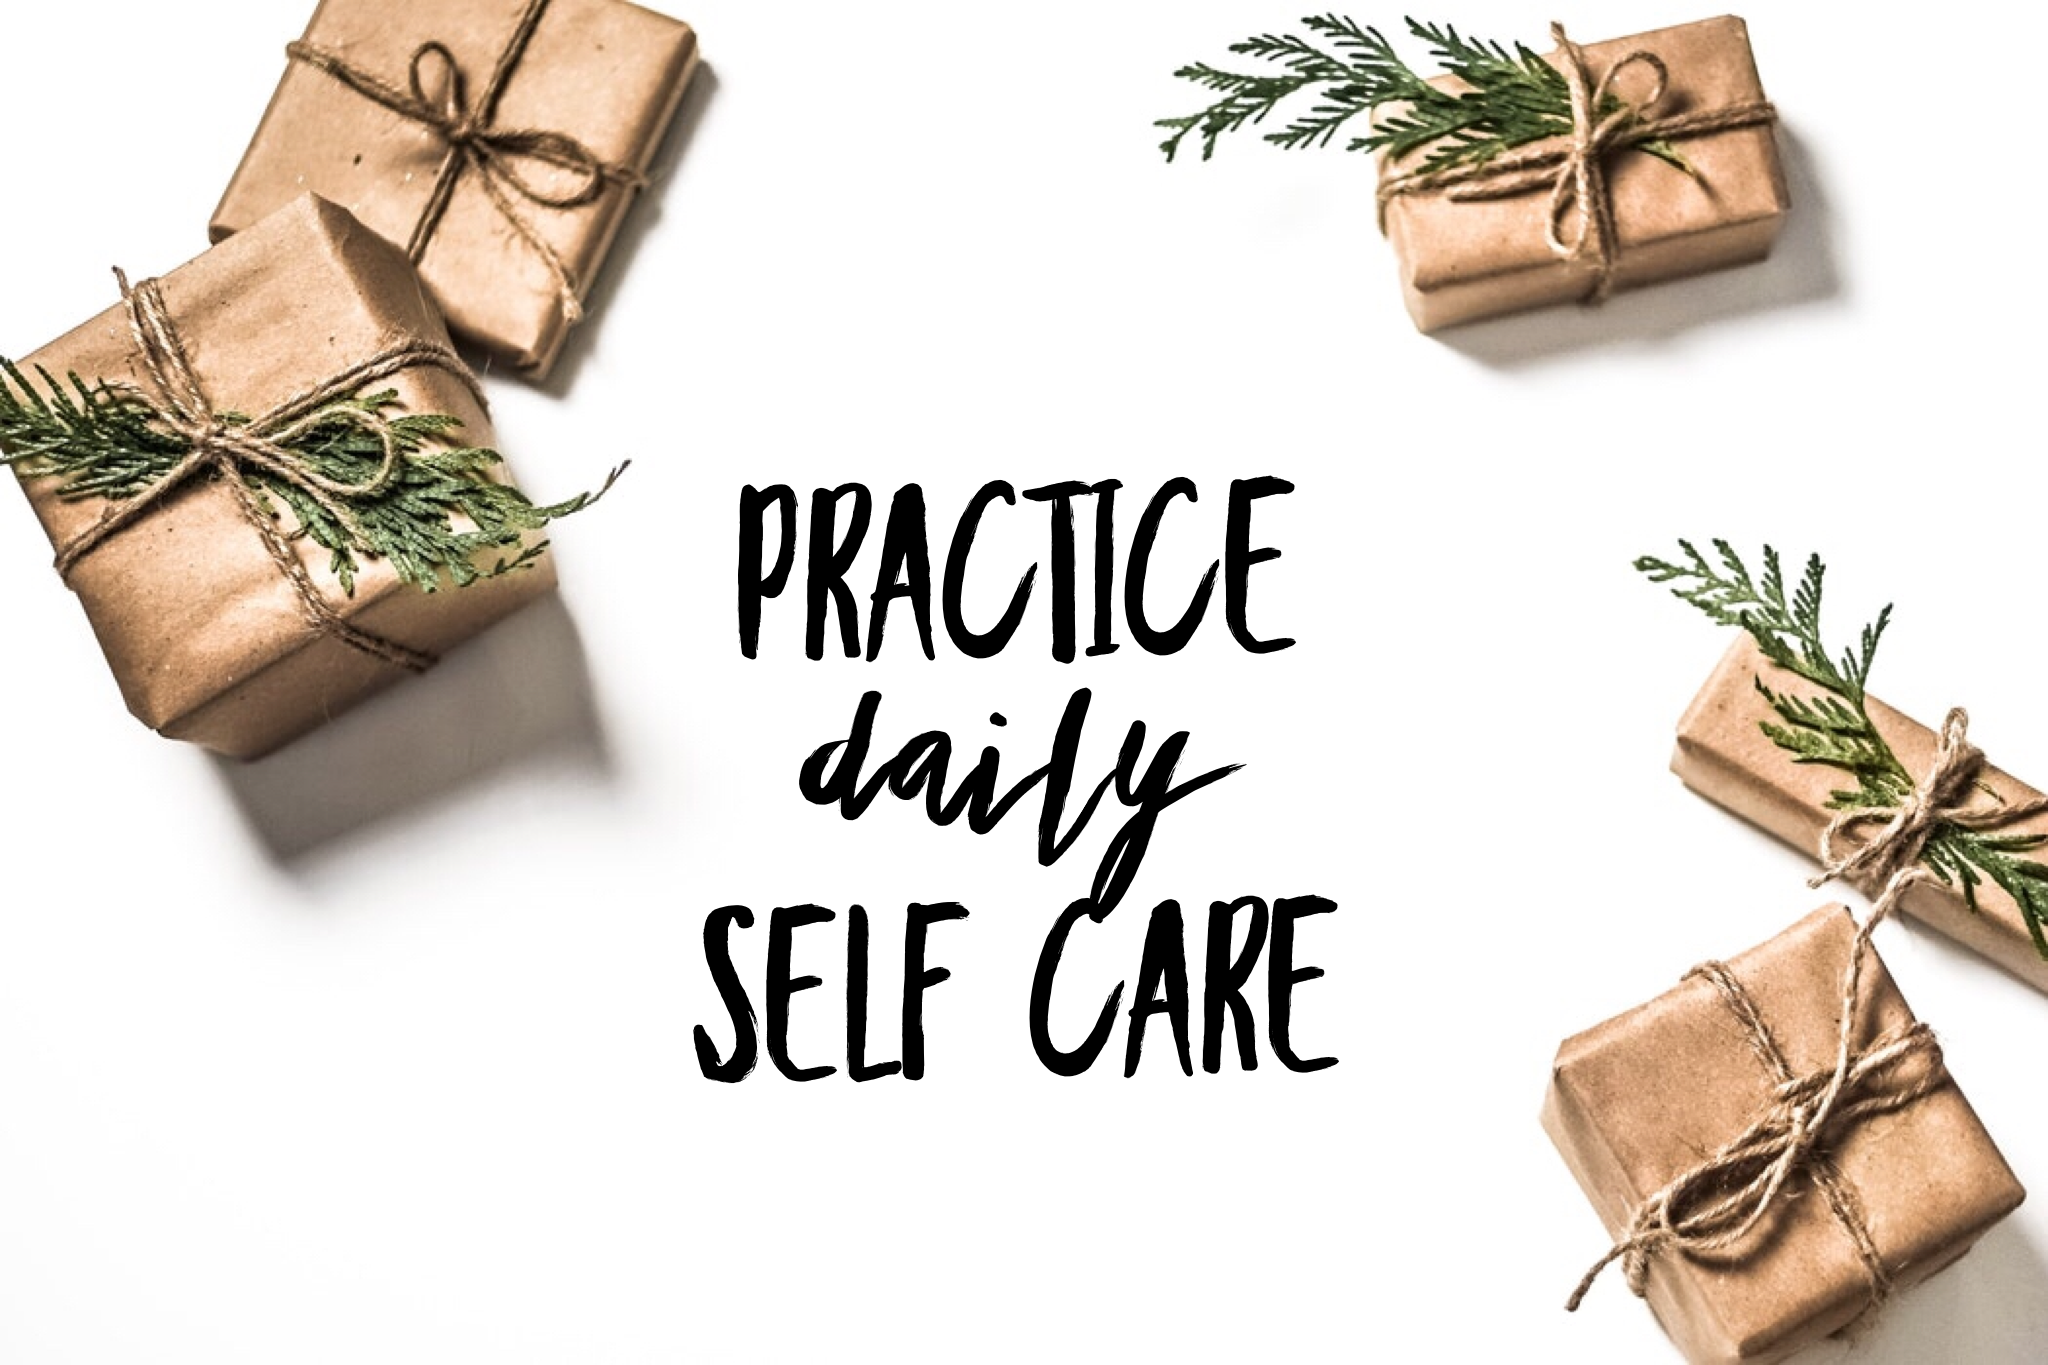 Practice daily self care